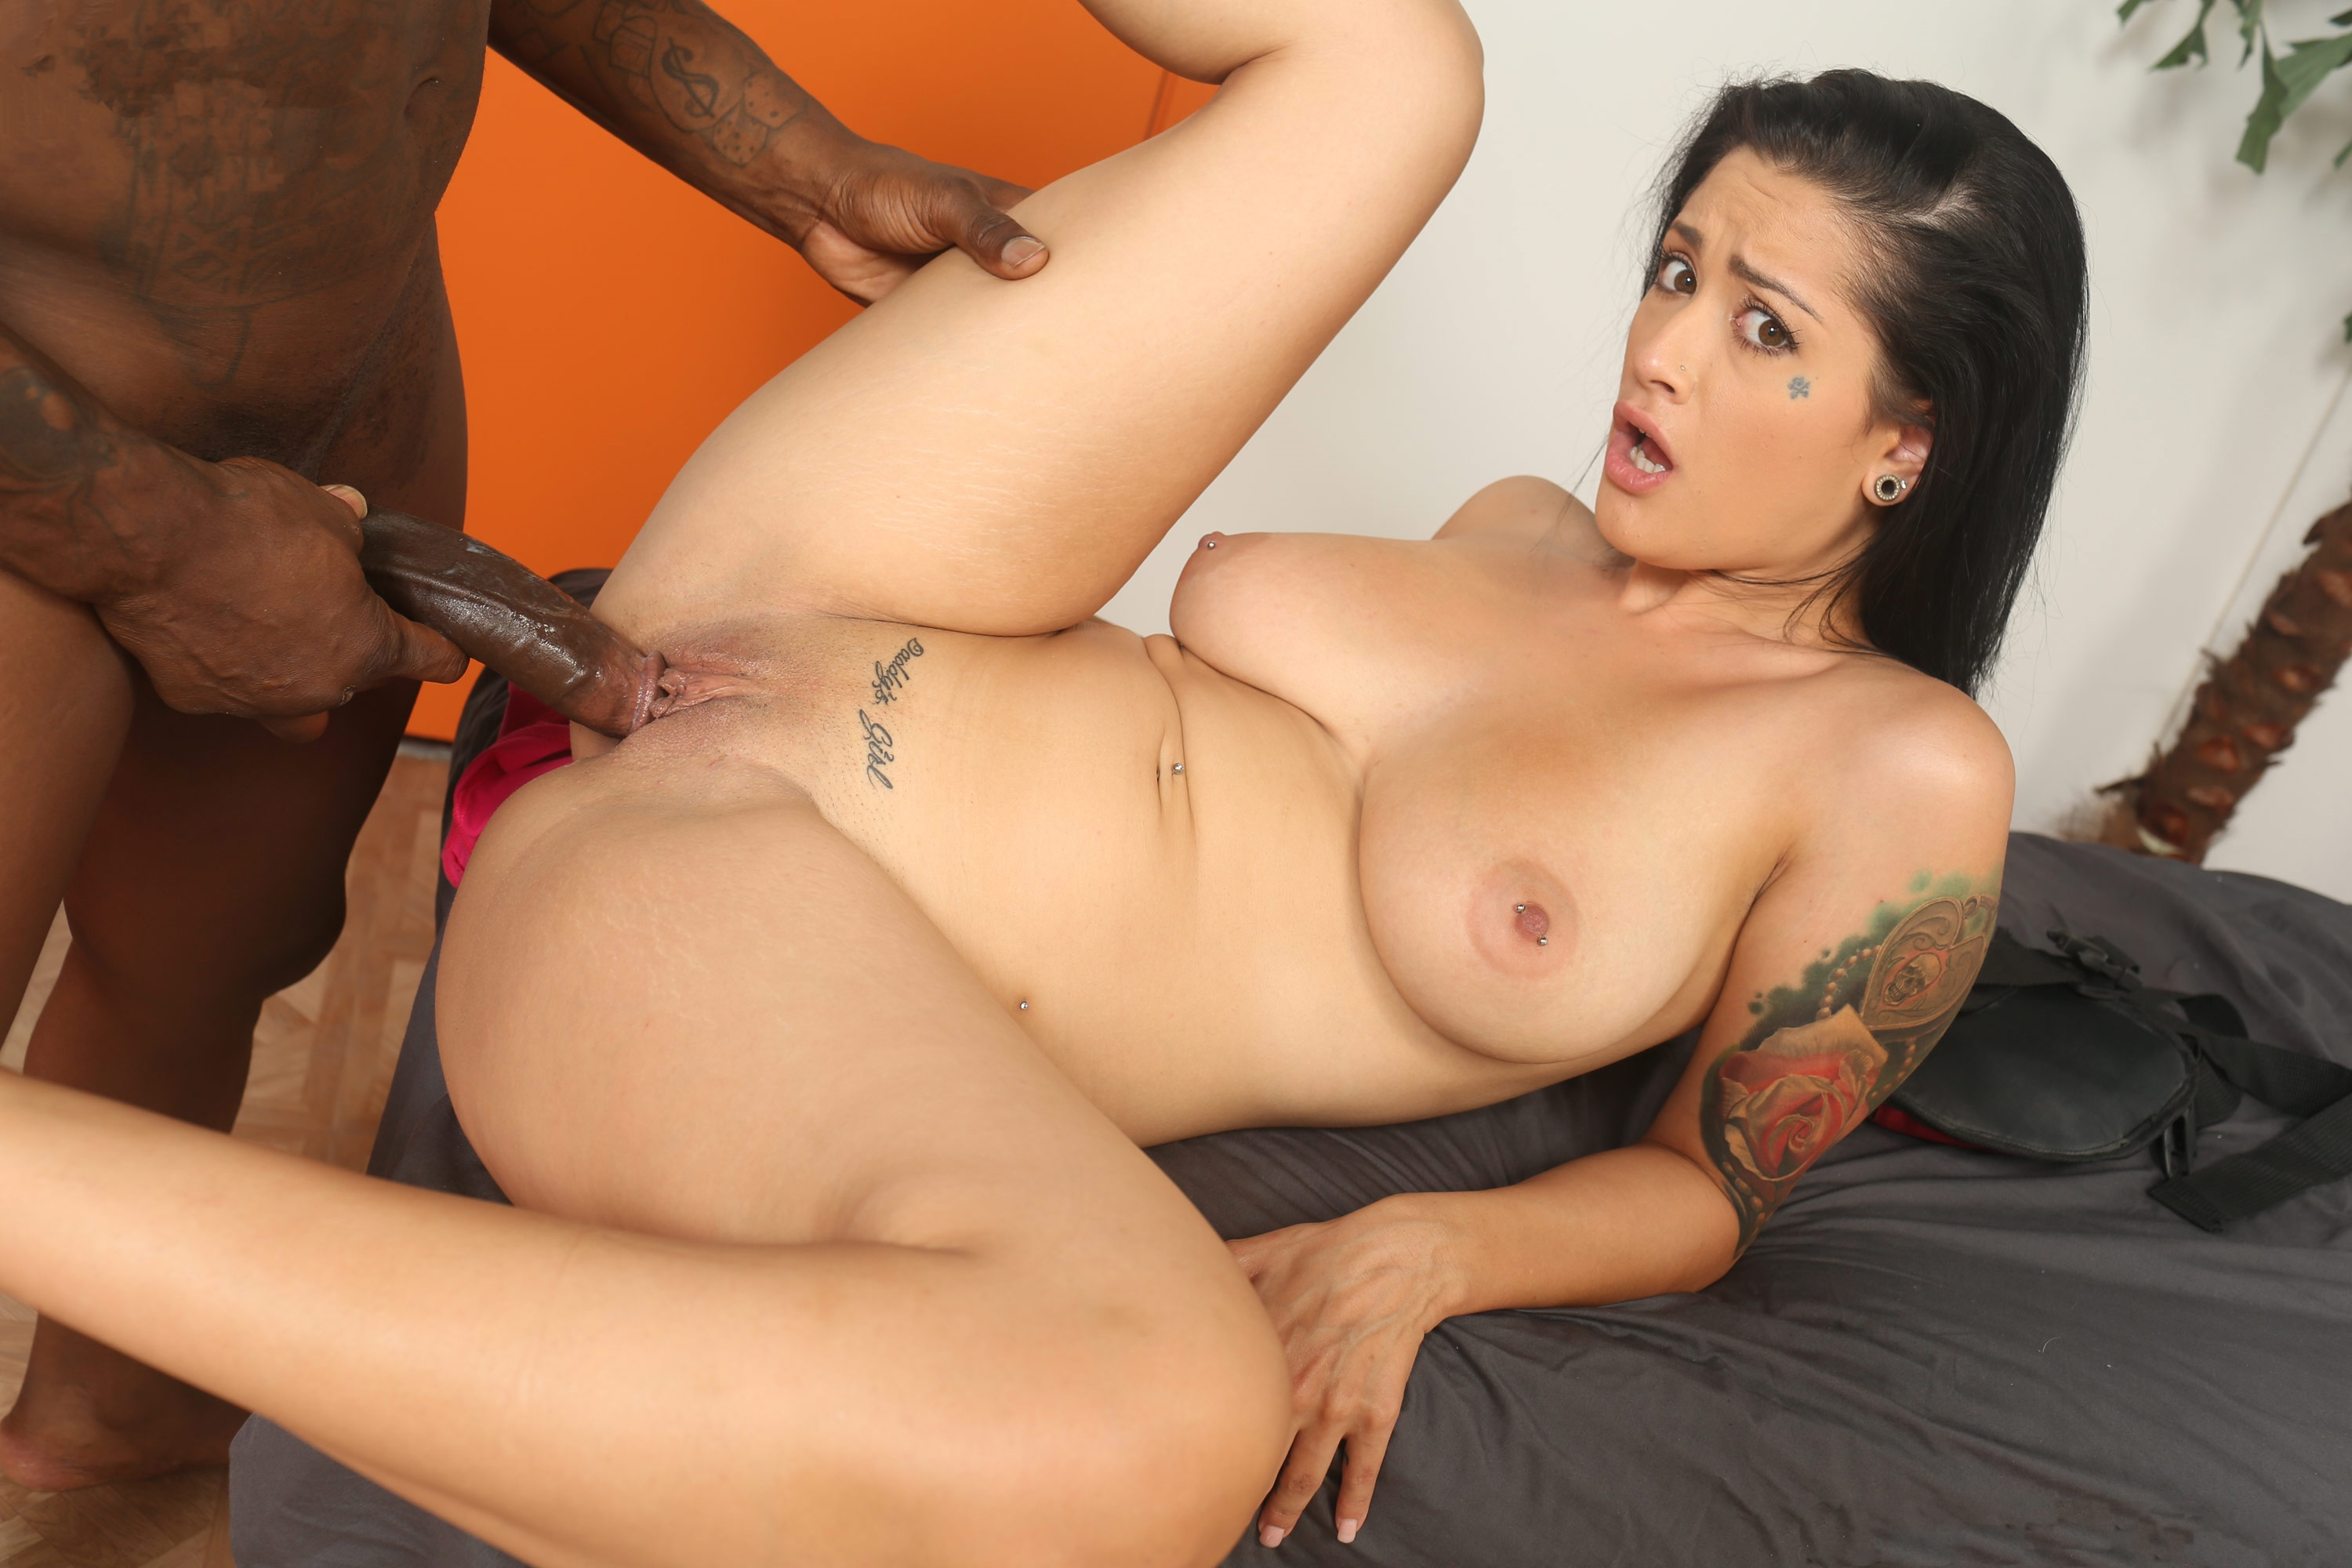 Busty latina interracial hardcore videos #13